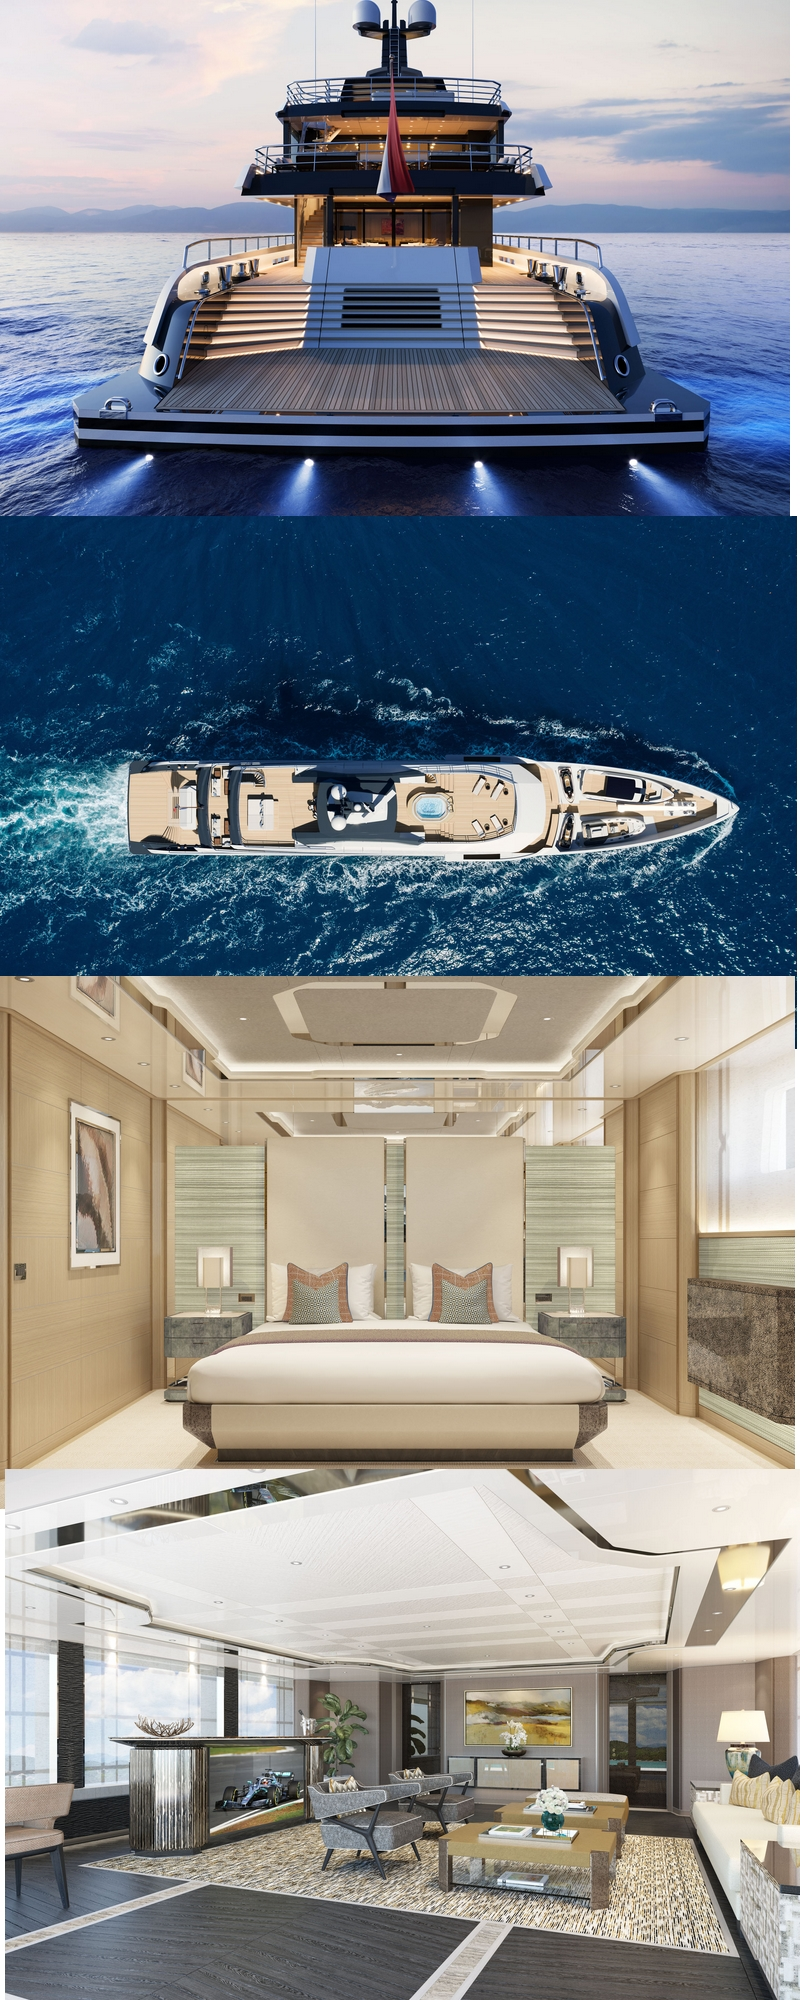 Amels Yachts announced the Amels 60 - an exciting new take on the very best Amels knowhow and craftsmanship.-2019